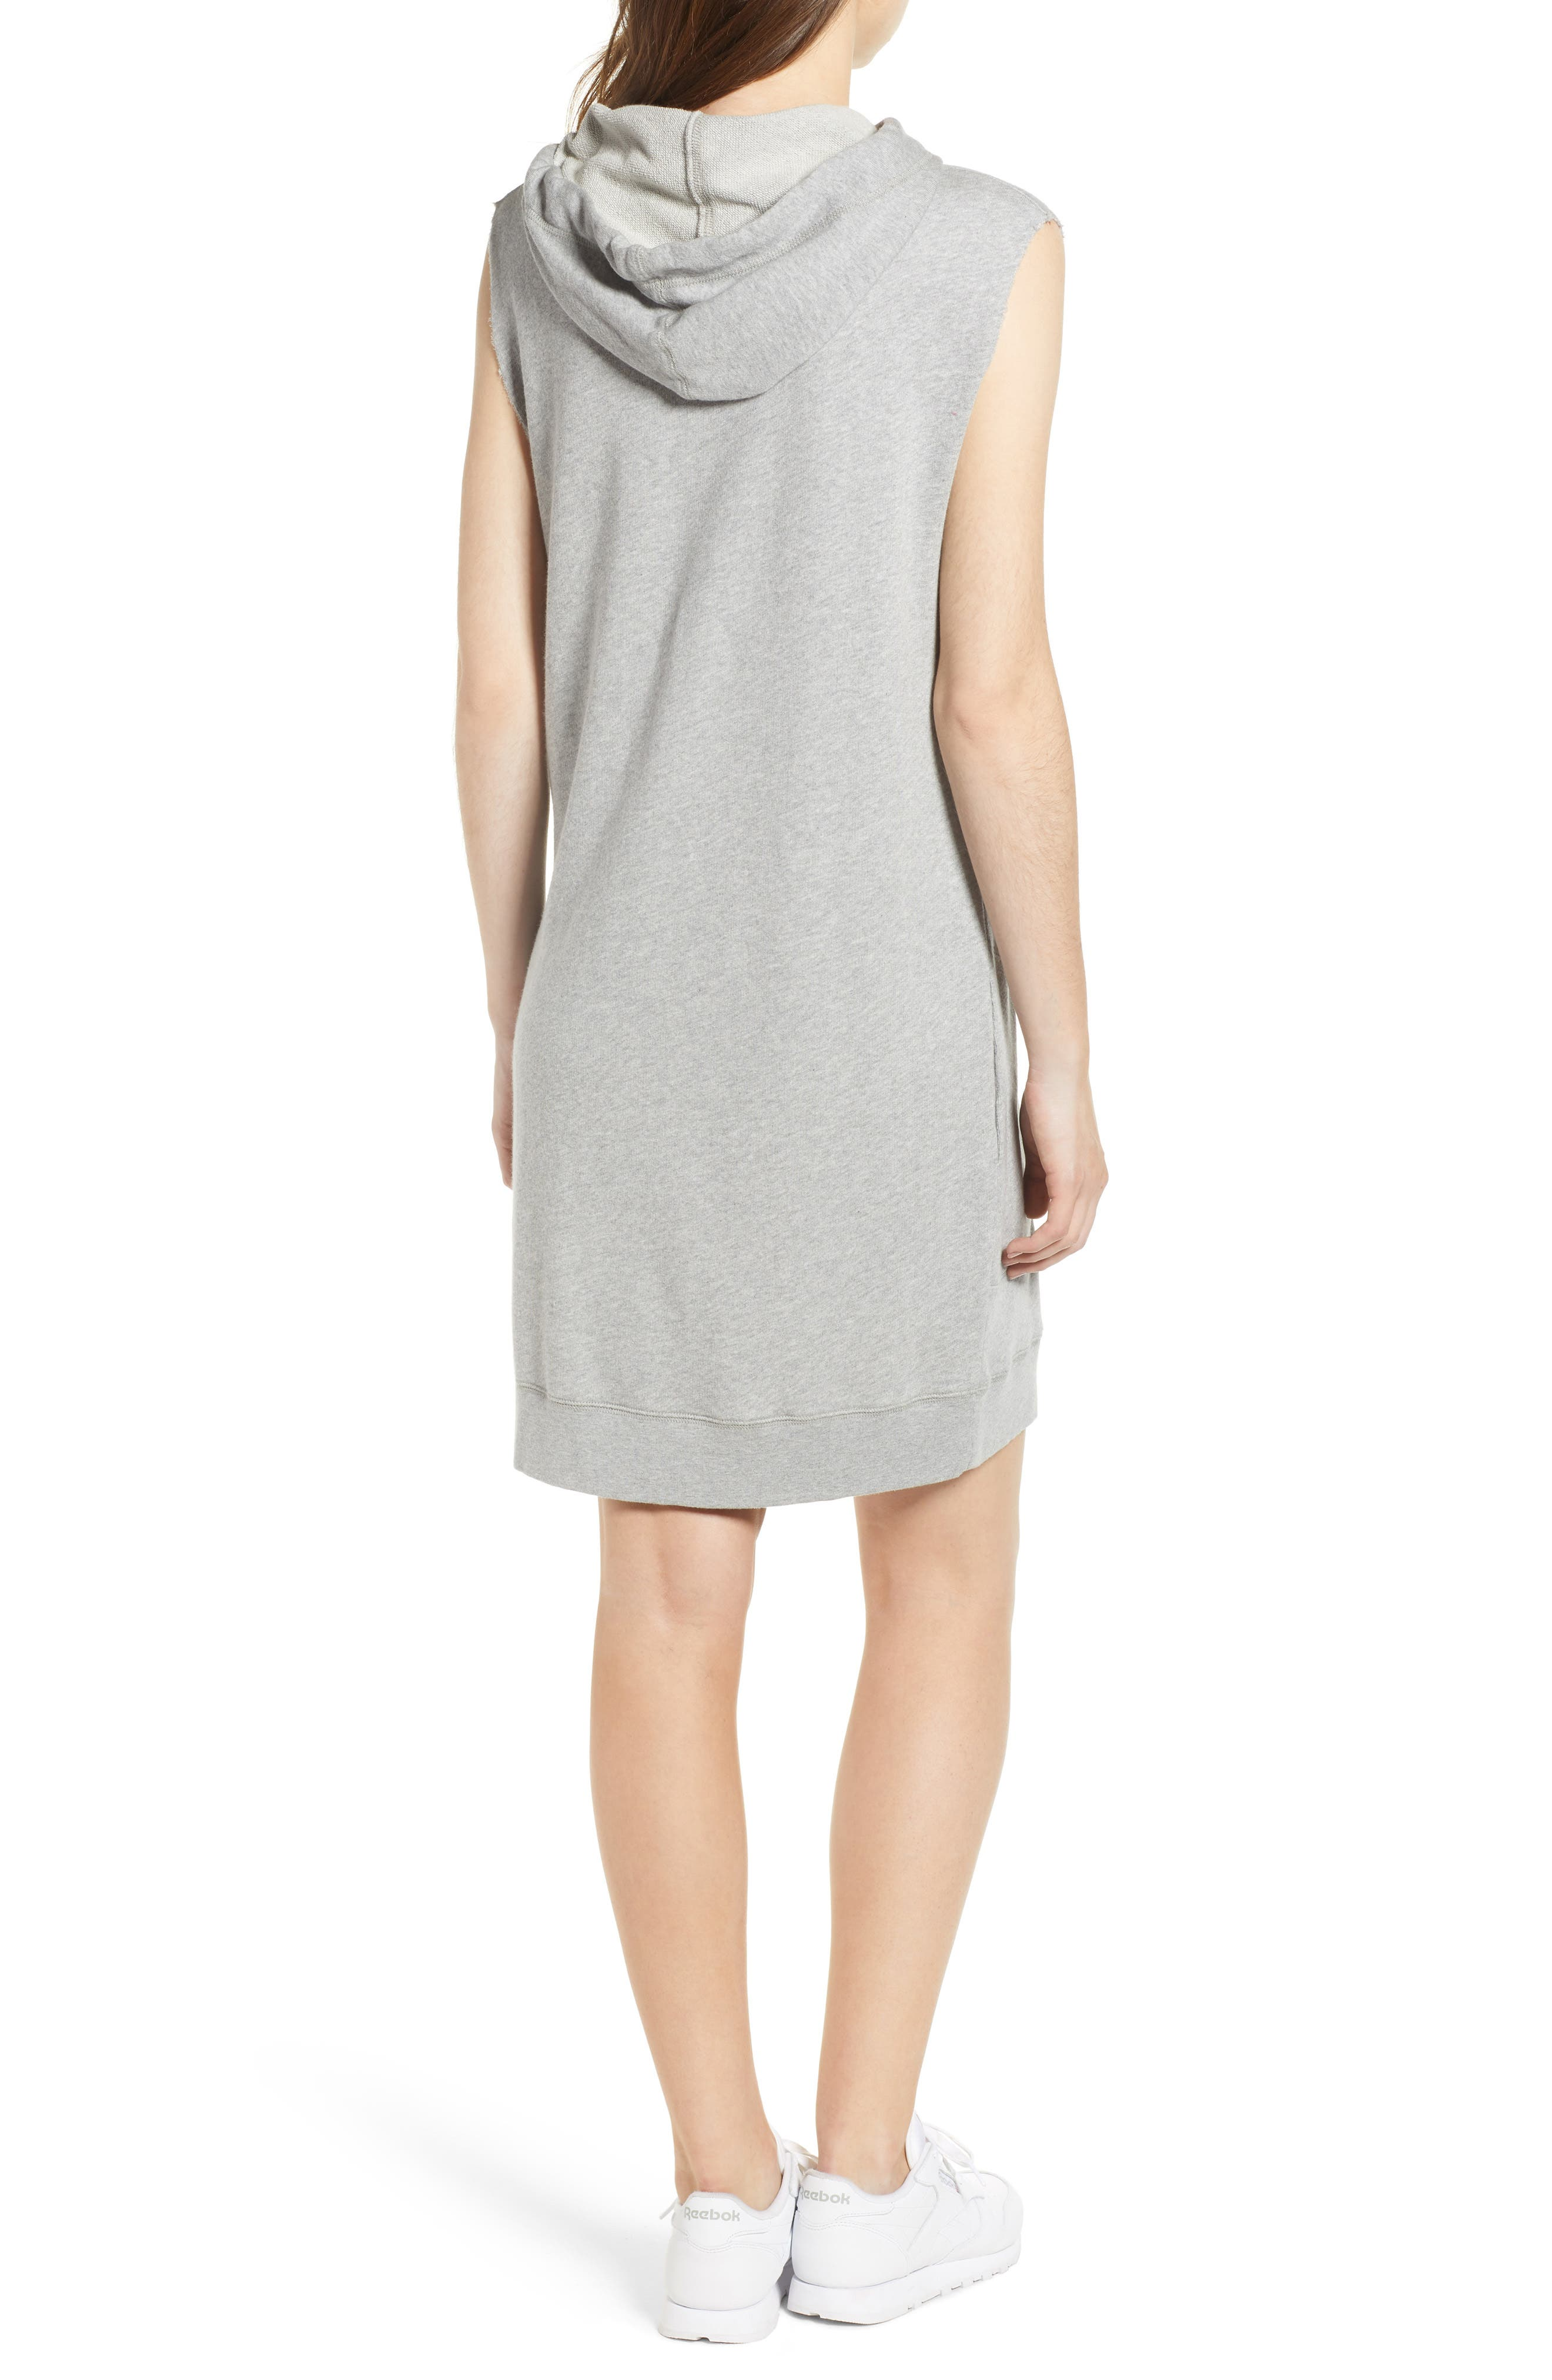 Sia Bis Hooded Dress,                             Alternate thumbnail 2, color,                             Melange Grey